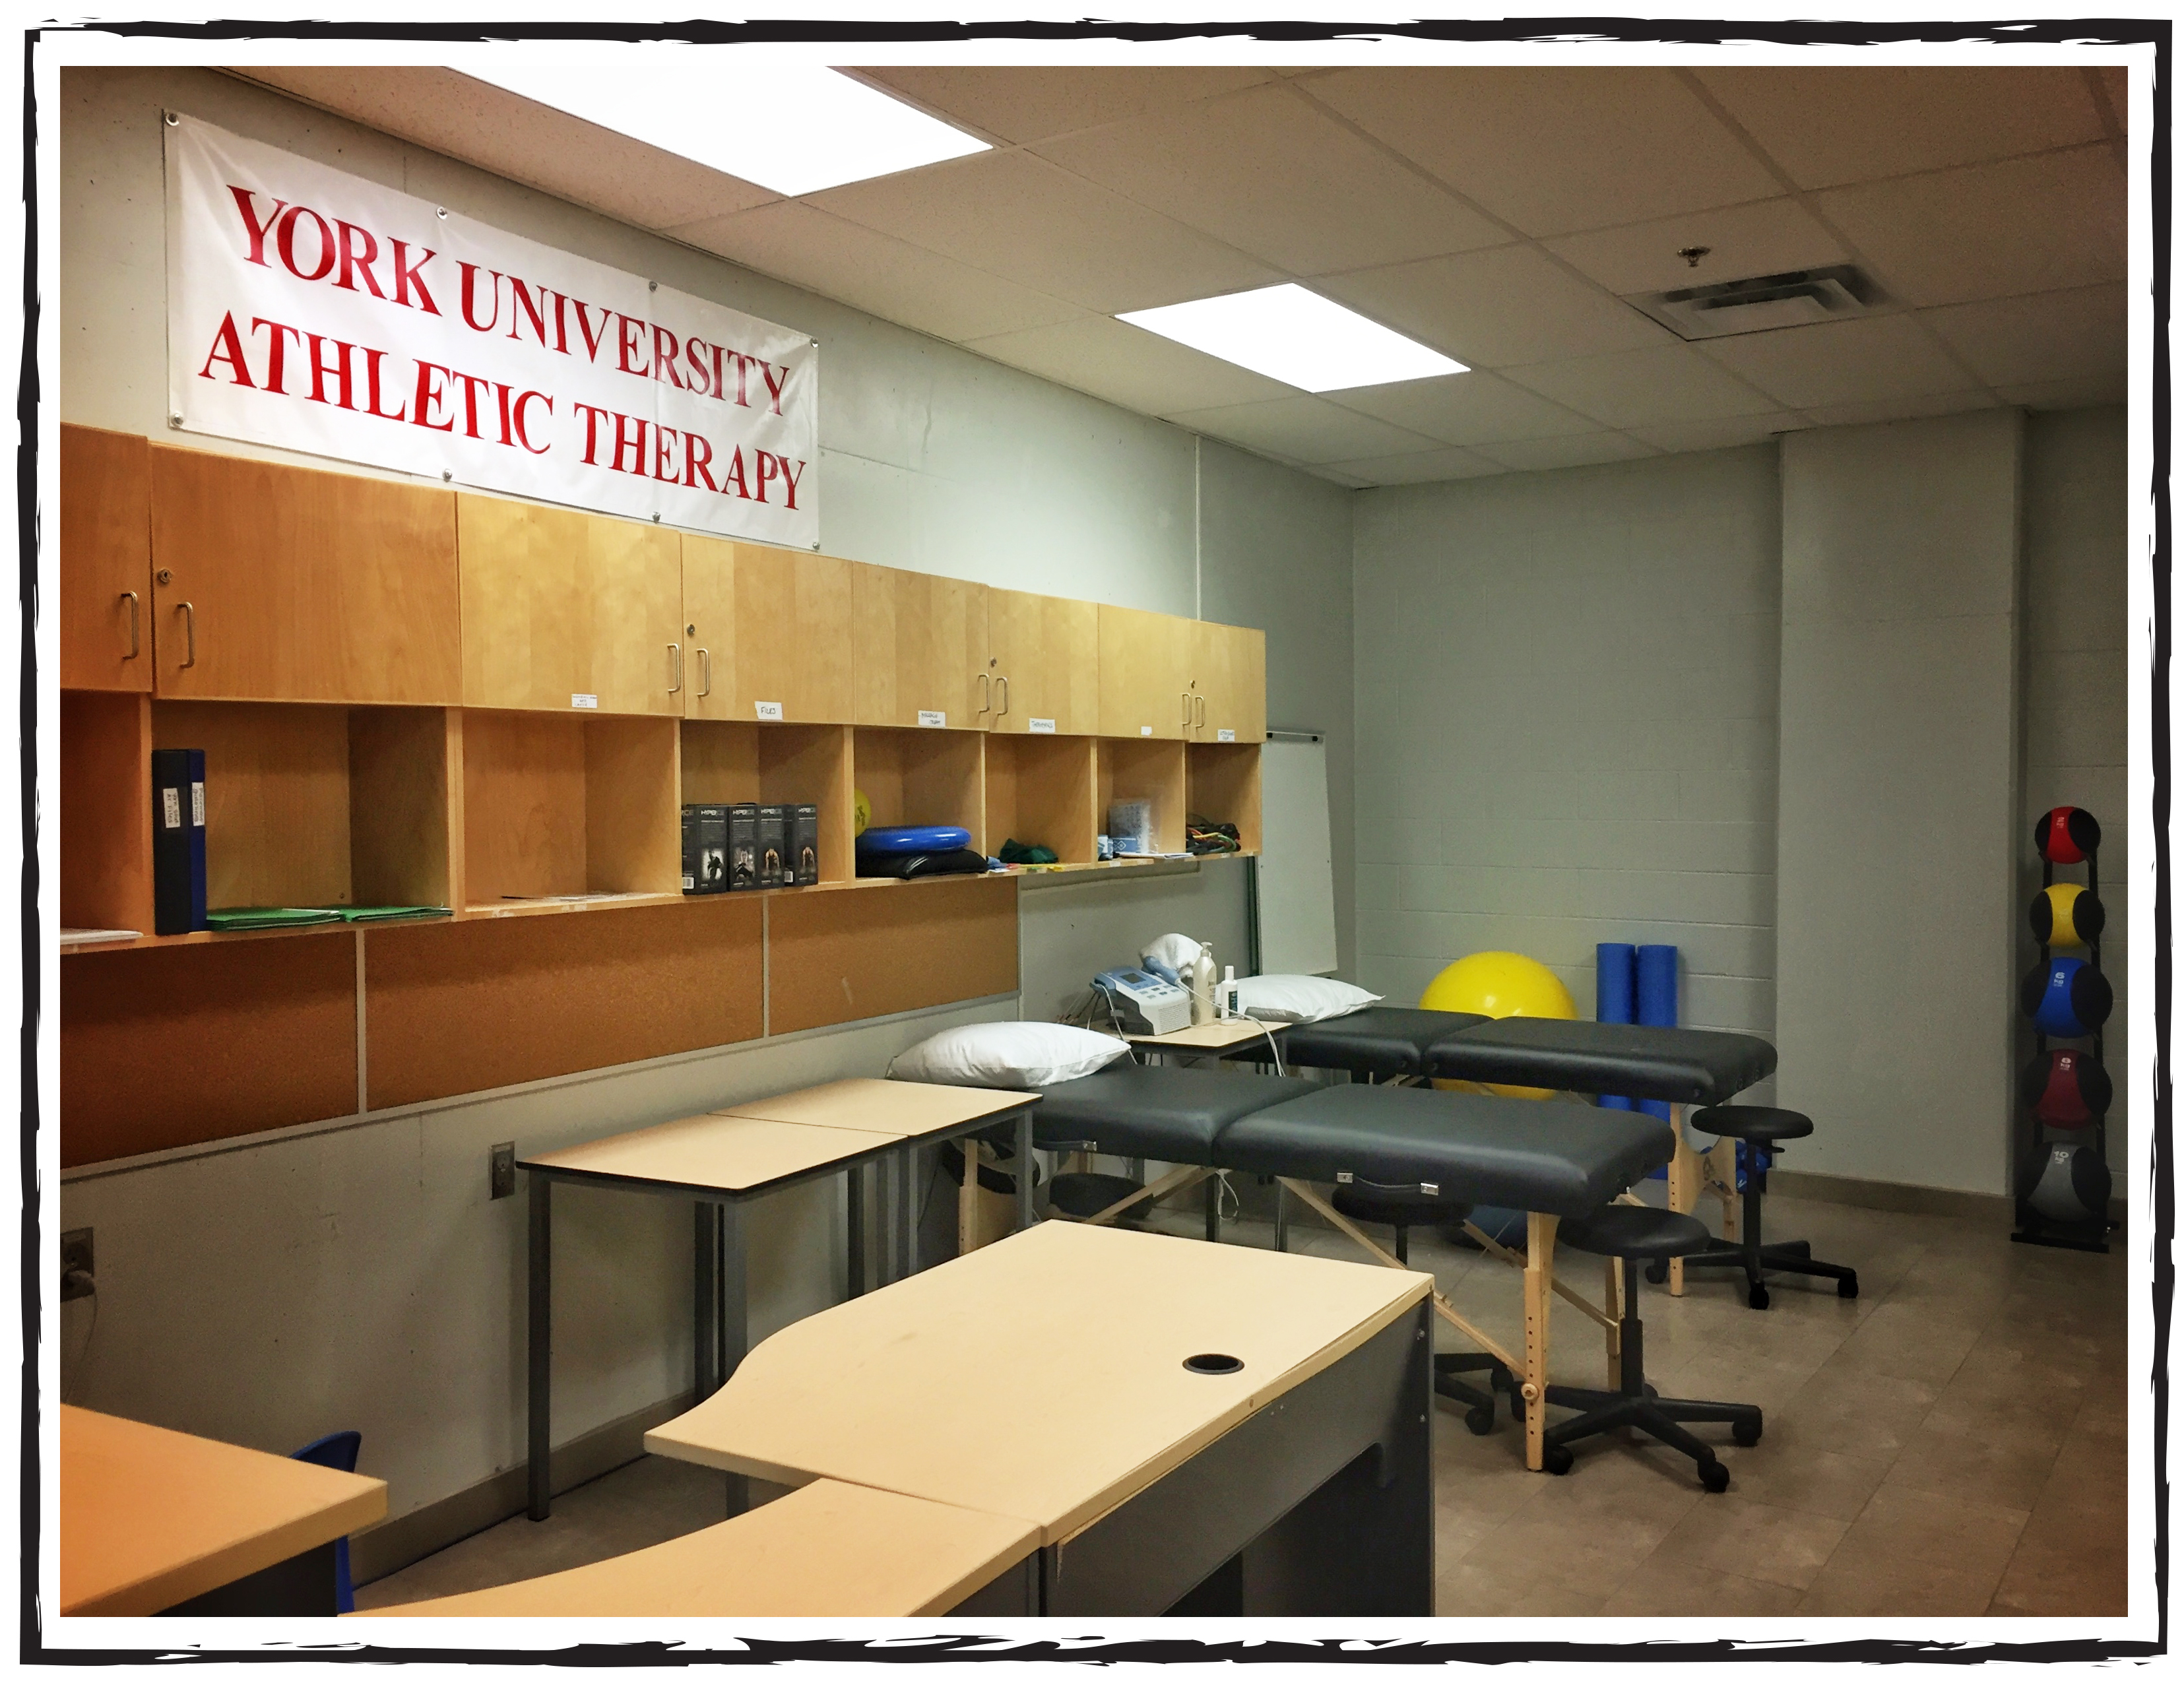 York University Atheltic Therapy Centre